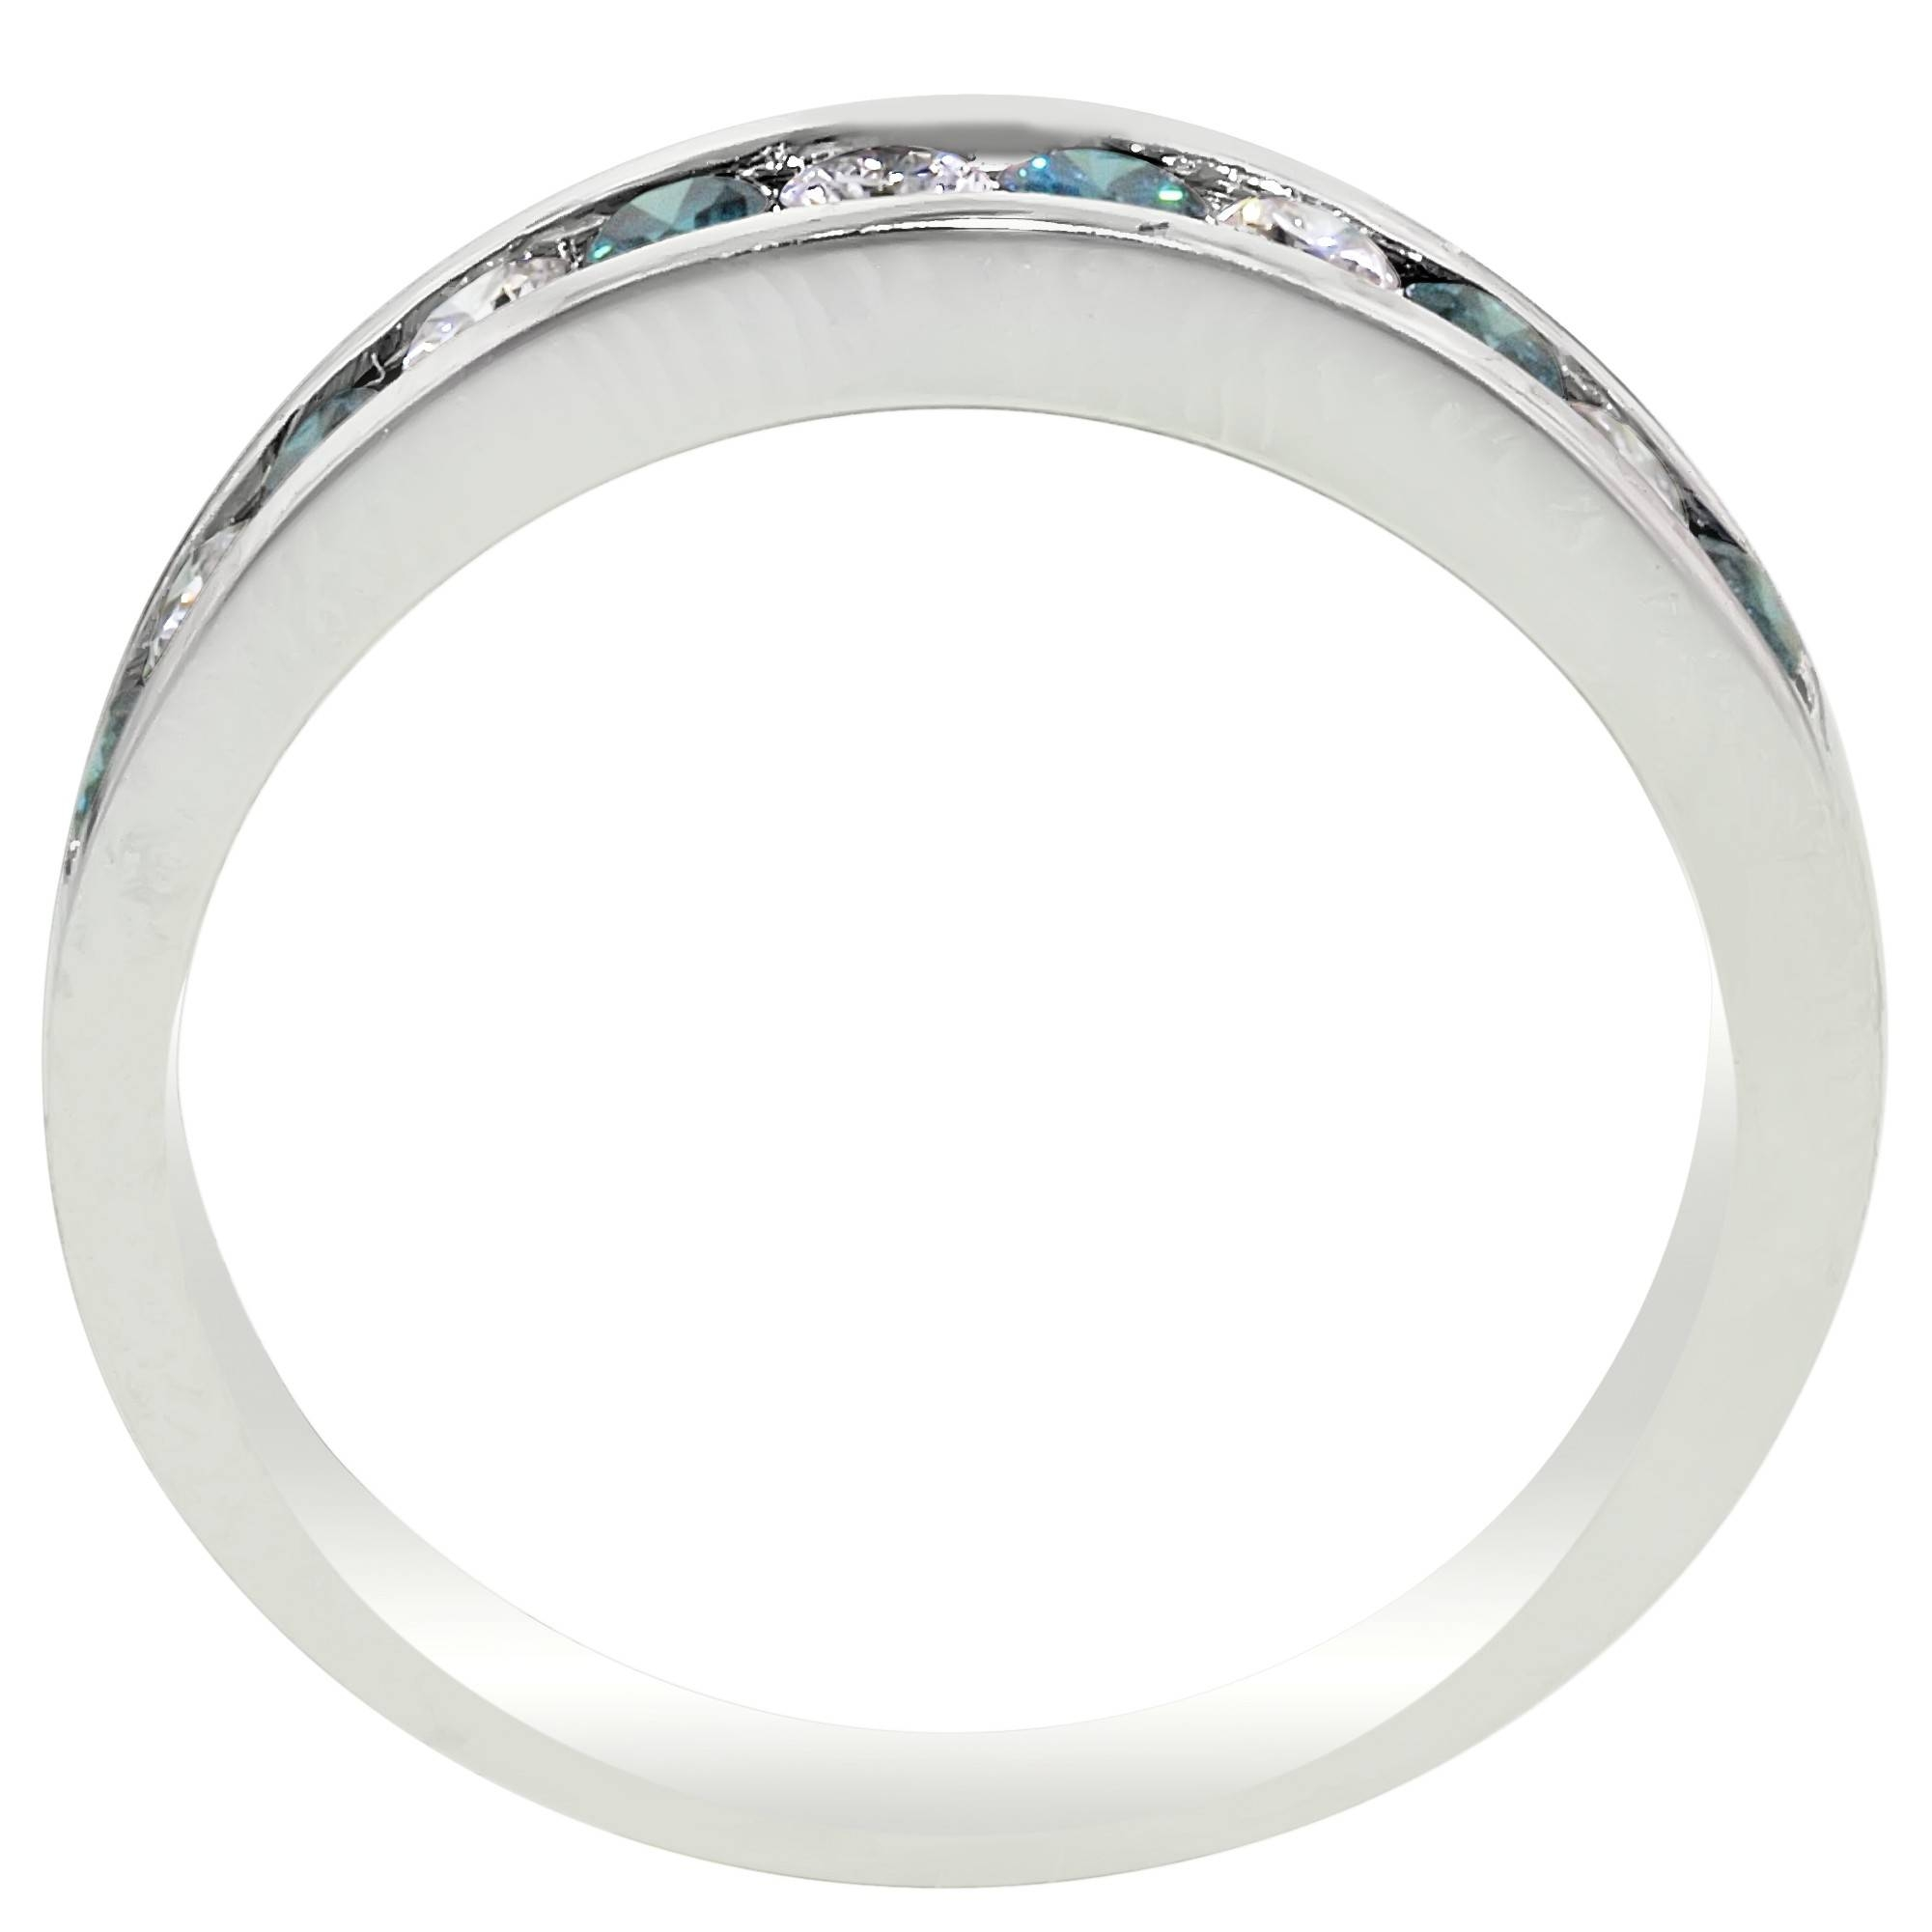 Blue Diamond Anniversary Band In 14kt White Gold (1/2ct Tw) Throughout 2018 Blue Diamond Anniversary Rings (View 14 of 25)